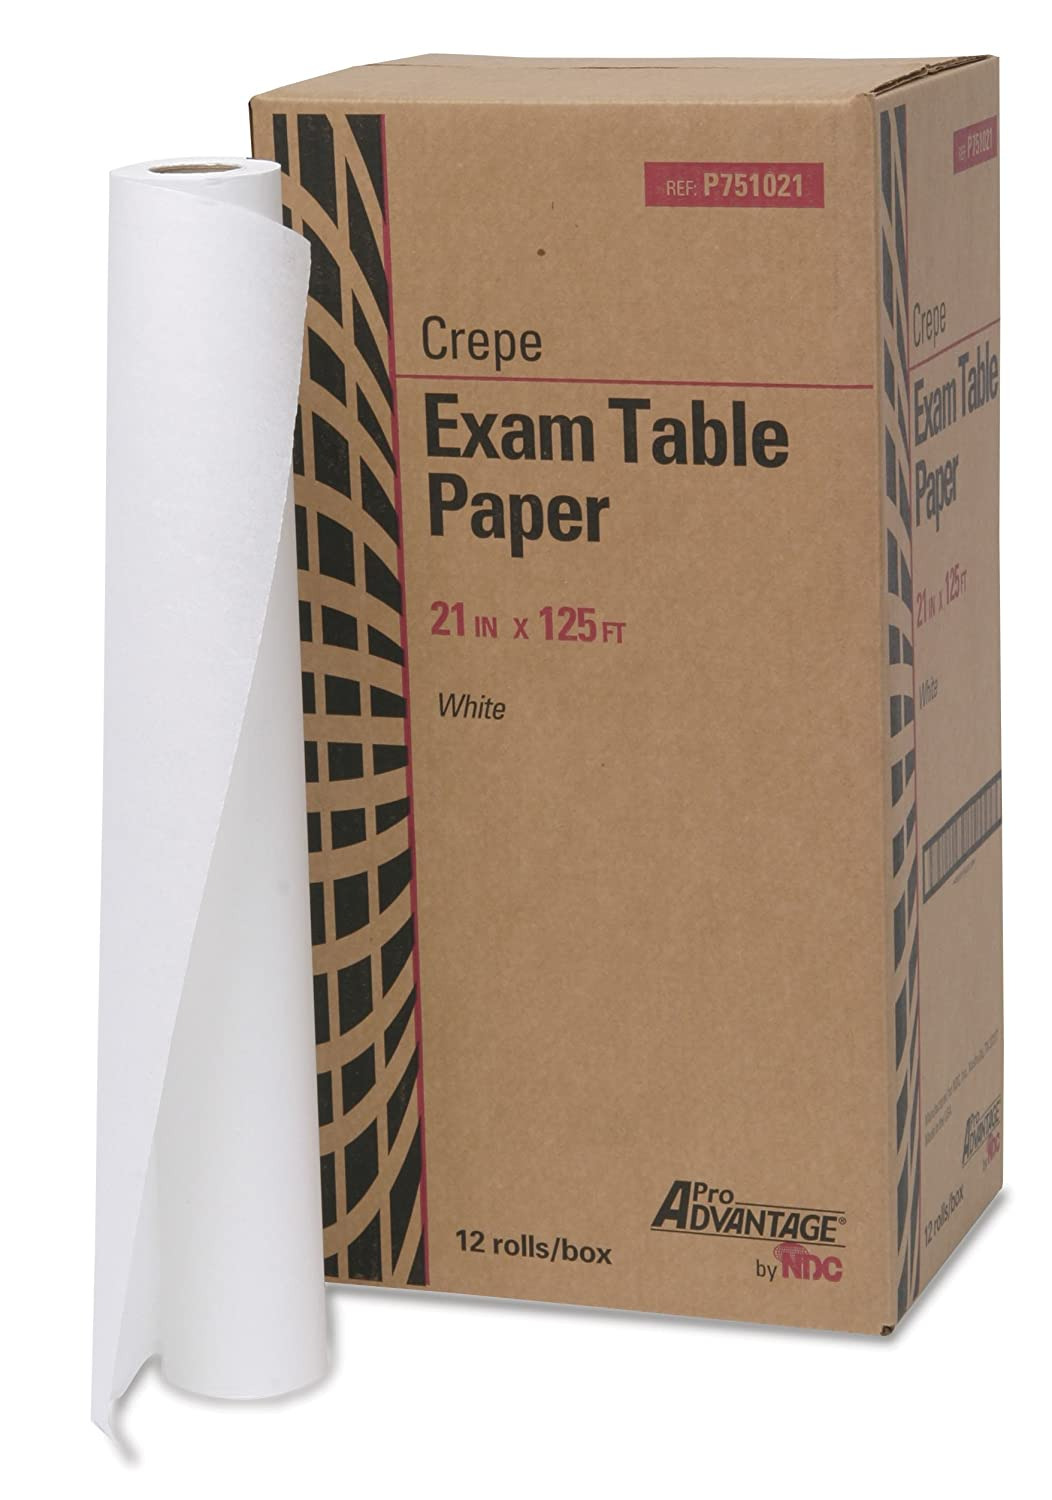 Bargain IMCO P751021 Pro outlet Advantage Exam Table Paper Creped Pack 12 of